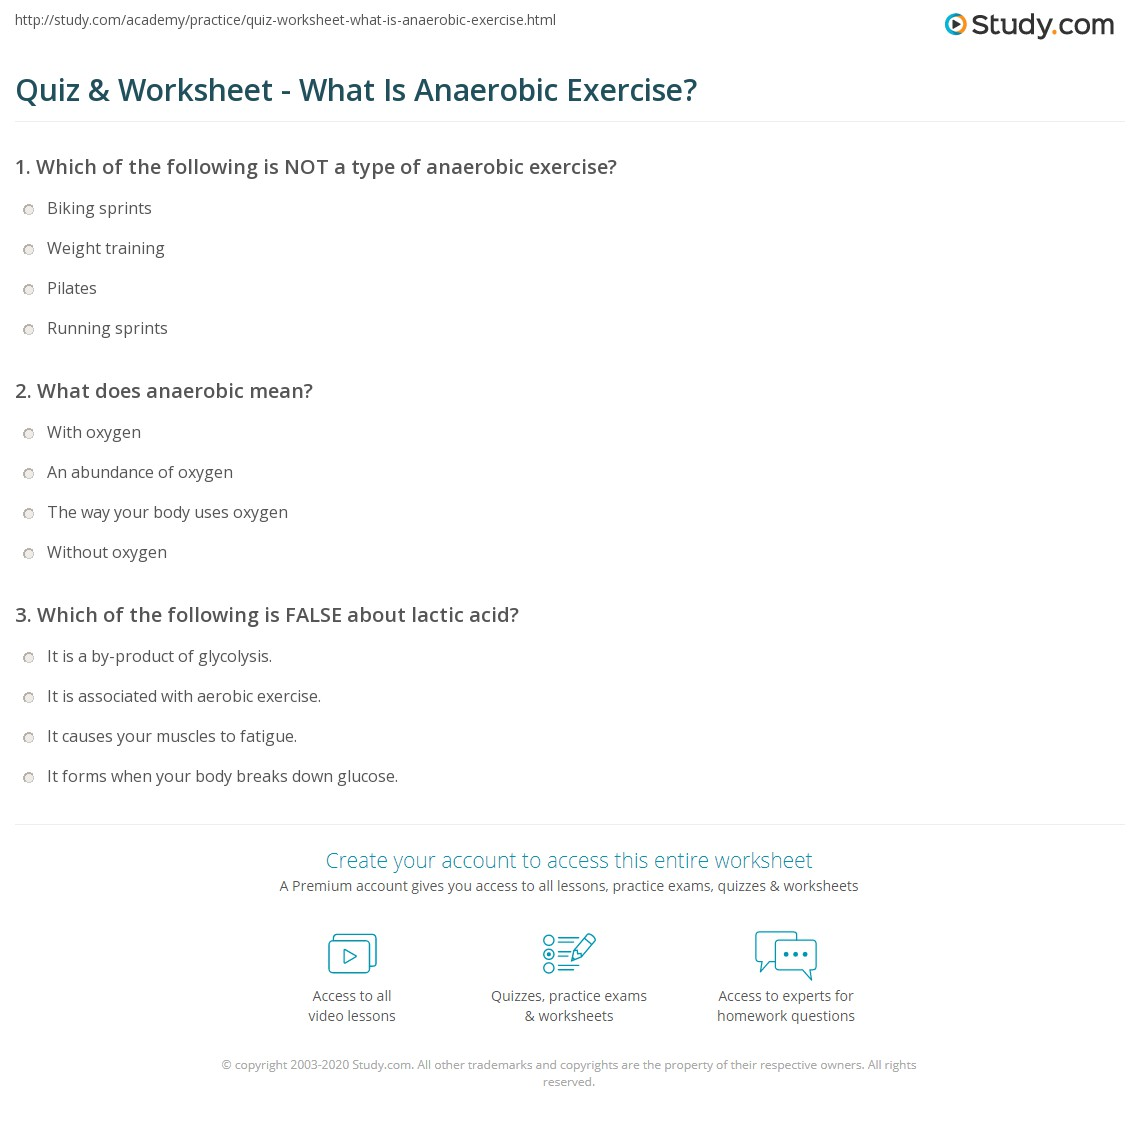 what is the difference between aerobic exercise and anaerobic exercise